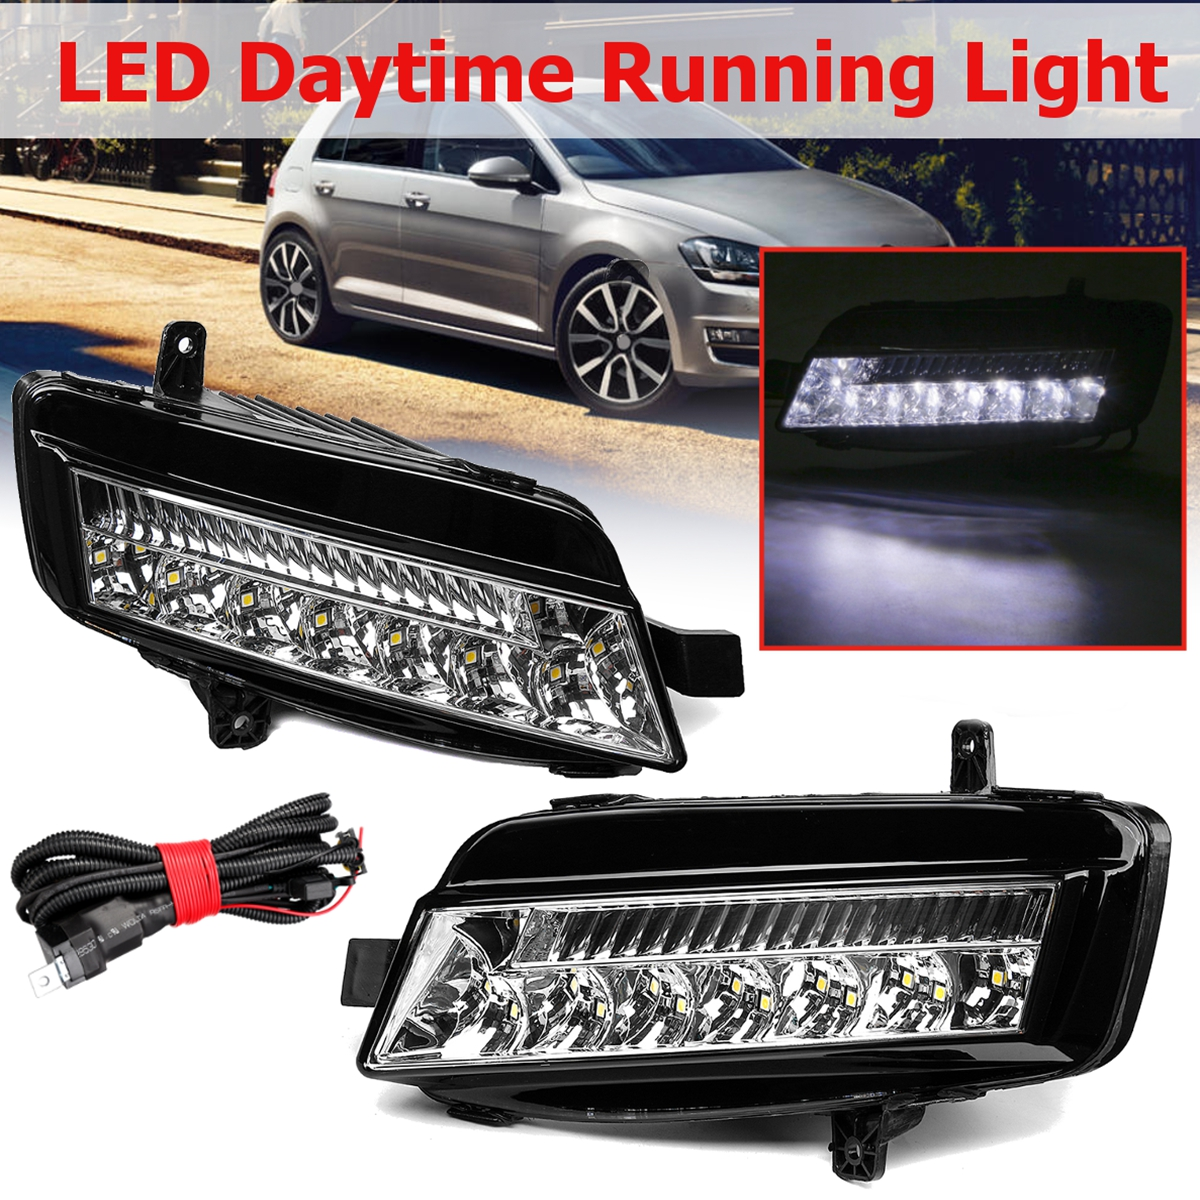 For VW Golf 7 MK7 2014 2015 2016 2017 1 Pair LED DRL Daytime Running Lights Fog Light Fog Lamp Car-styling Headlights Head Lamp car styling led drl daytime running light for volkswagen vw golf 7 mk7 2013 2017 led bumper drl with yellow turn signal